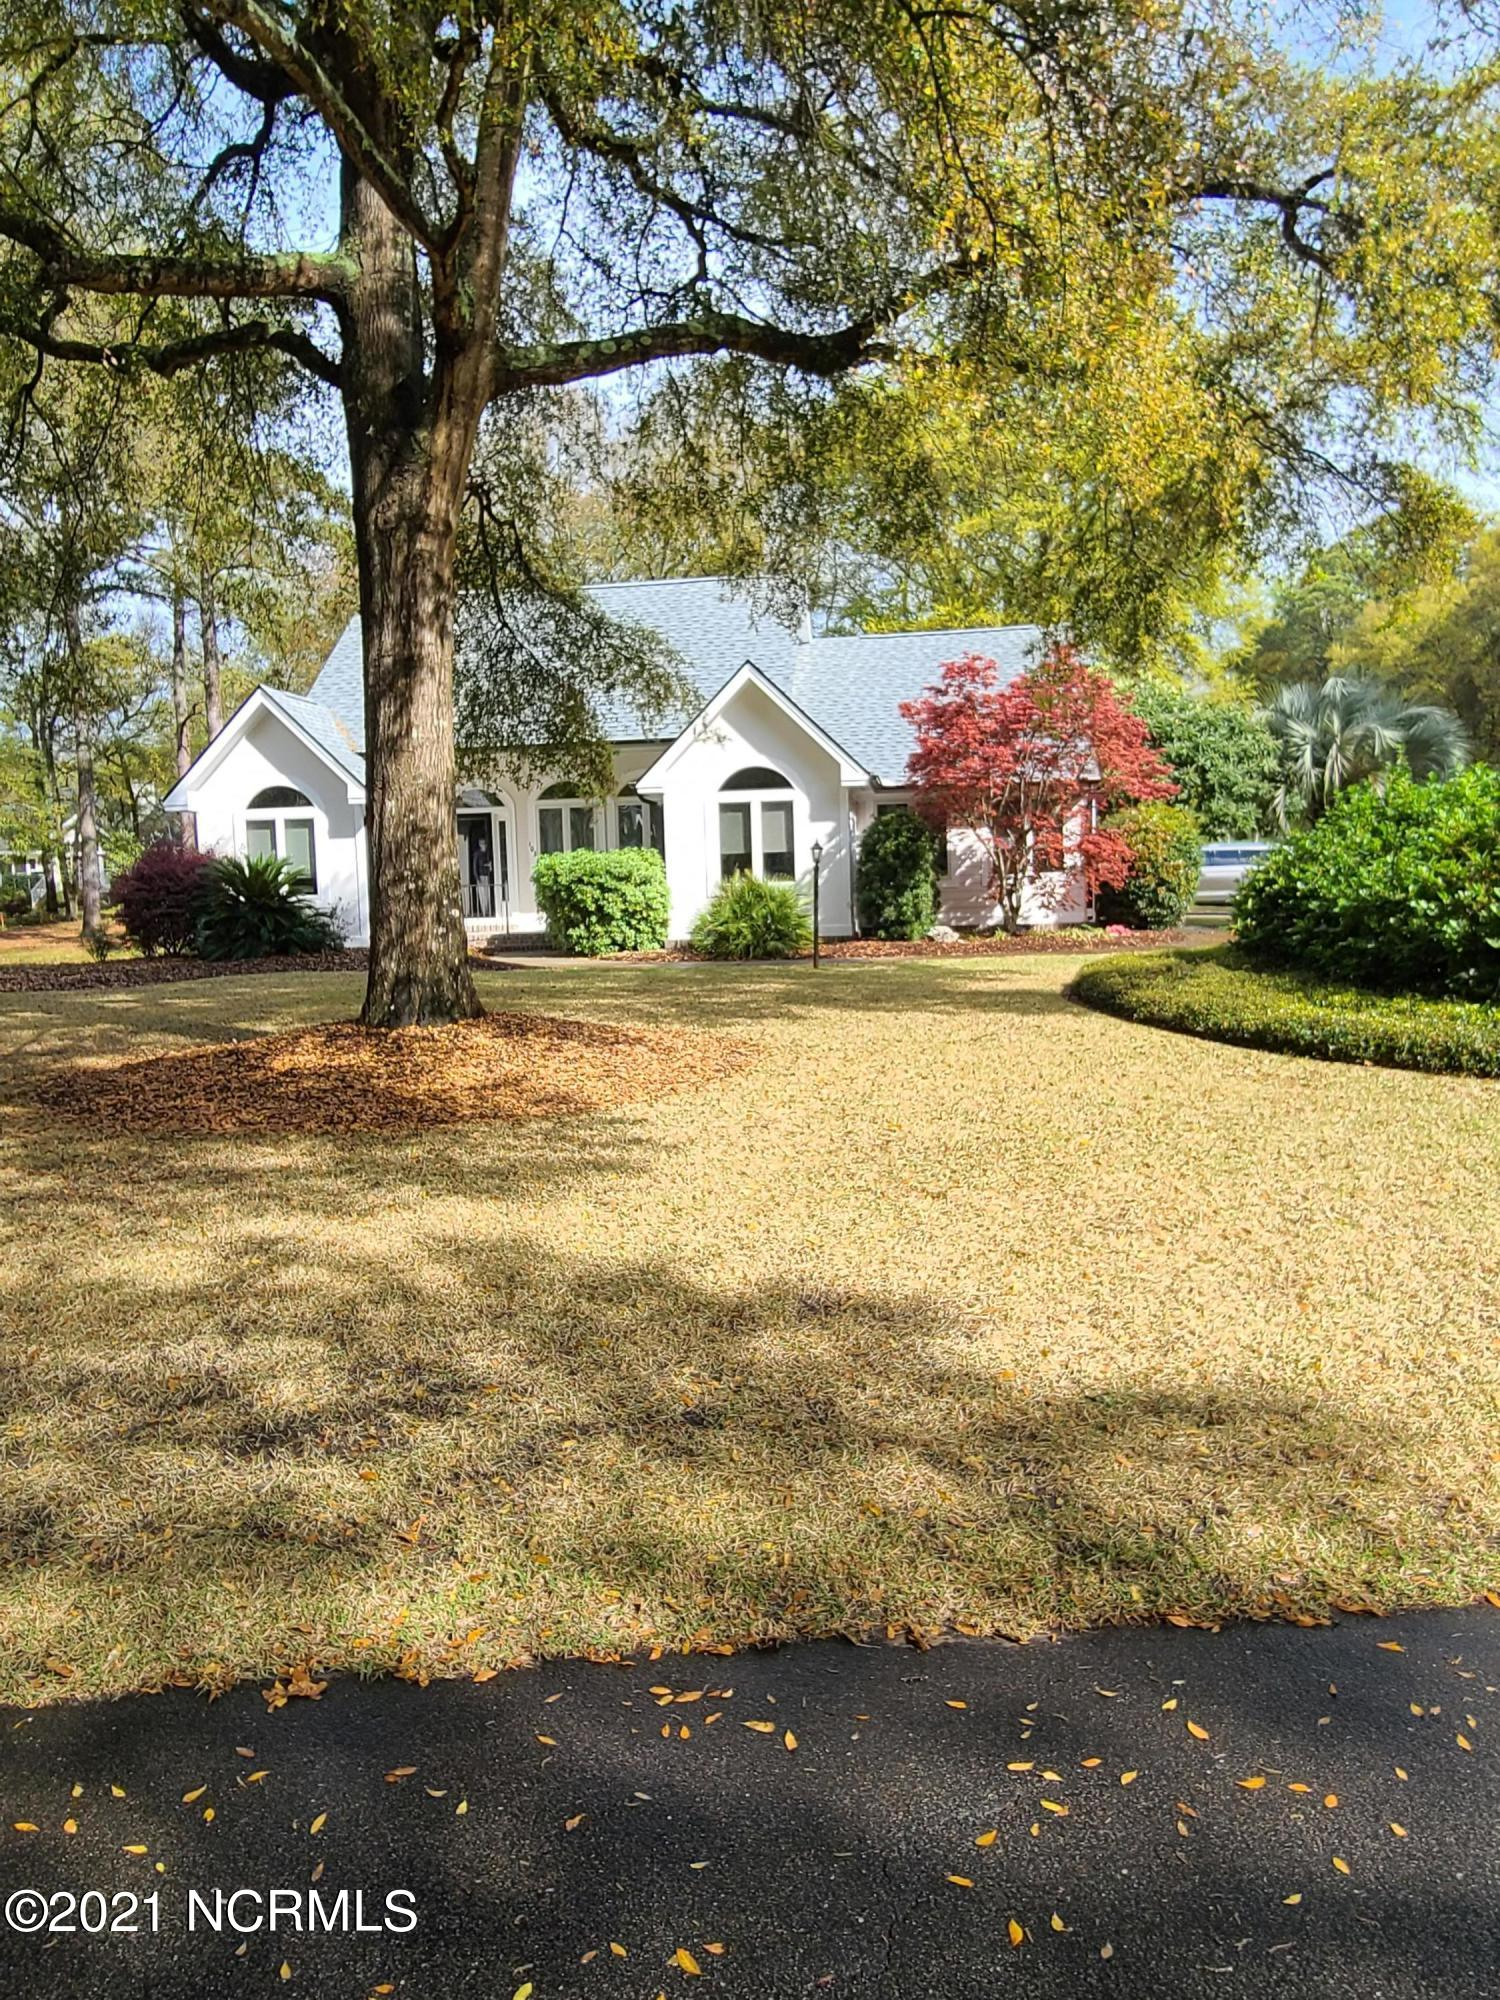 This is It!!  NEW ROOF, gutters. Corian counters in kitchen, custom maple cabinets, Lovely 2,200 heated Sq. feet  custom home on lovely 76 x 155 x 75 x 167 landscaped corner lot with 2-car garage and tremendous uncovered back deck and patio for entertaining. This beauty is in lovely Sea Trail Plantation, which offers excellent amenities and 3 golf courses.  3 bedrooms & 2 baths.  double sided propane gas fireplace, and This wonderful floorplan offers formal living room and Carolina family room, formal dining room and large kitchen dinette area. custom maple kitchen cabinets and lots of them. Craft room over garage. This is a custom-built one owner home built in 2002  New roof! 12 month Home Warranty covering HVAC, Hot water Heater, all appliances including washer-dryer, all electrical and all plumbing. House interior being painted within 2 weeks.  Only 5 minutes to Sunset Beach, a 3 mile long pristine family Beach with no high rises or neon signs. close driving distance to 3 grocery stores and 3 drug stores, retail shopping, restaurants, and fresh seafood market. Can be shown starting June 4, 2021. Vacant, owner moved to Matthews to be close to children. irrigation on well